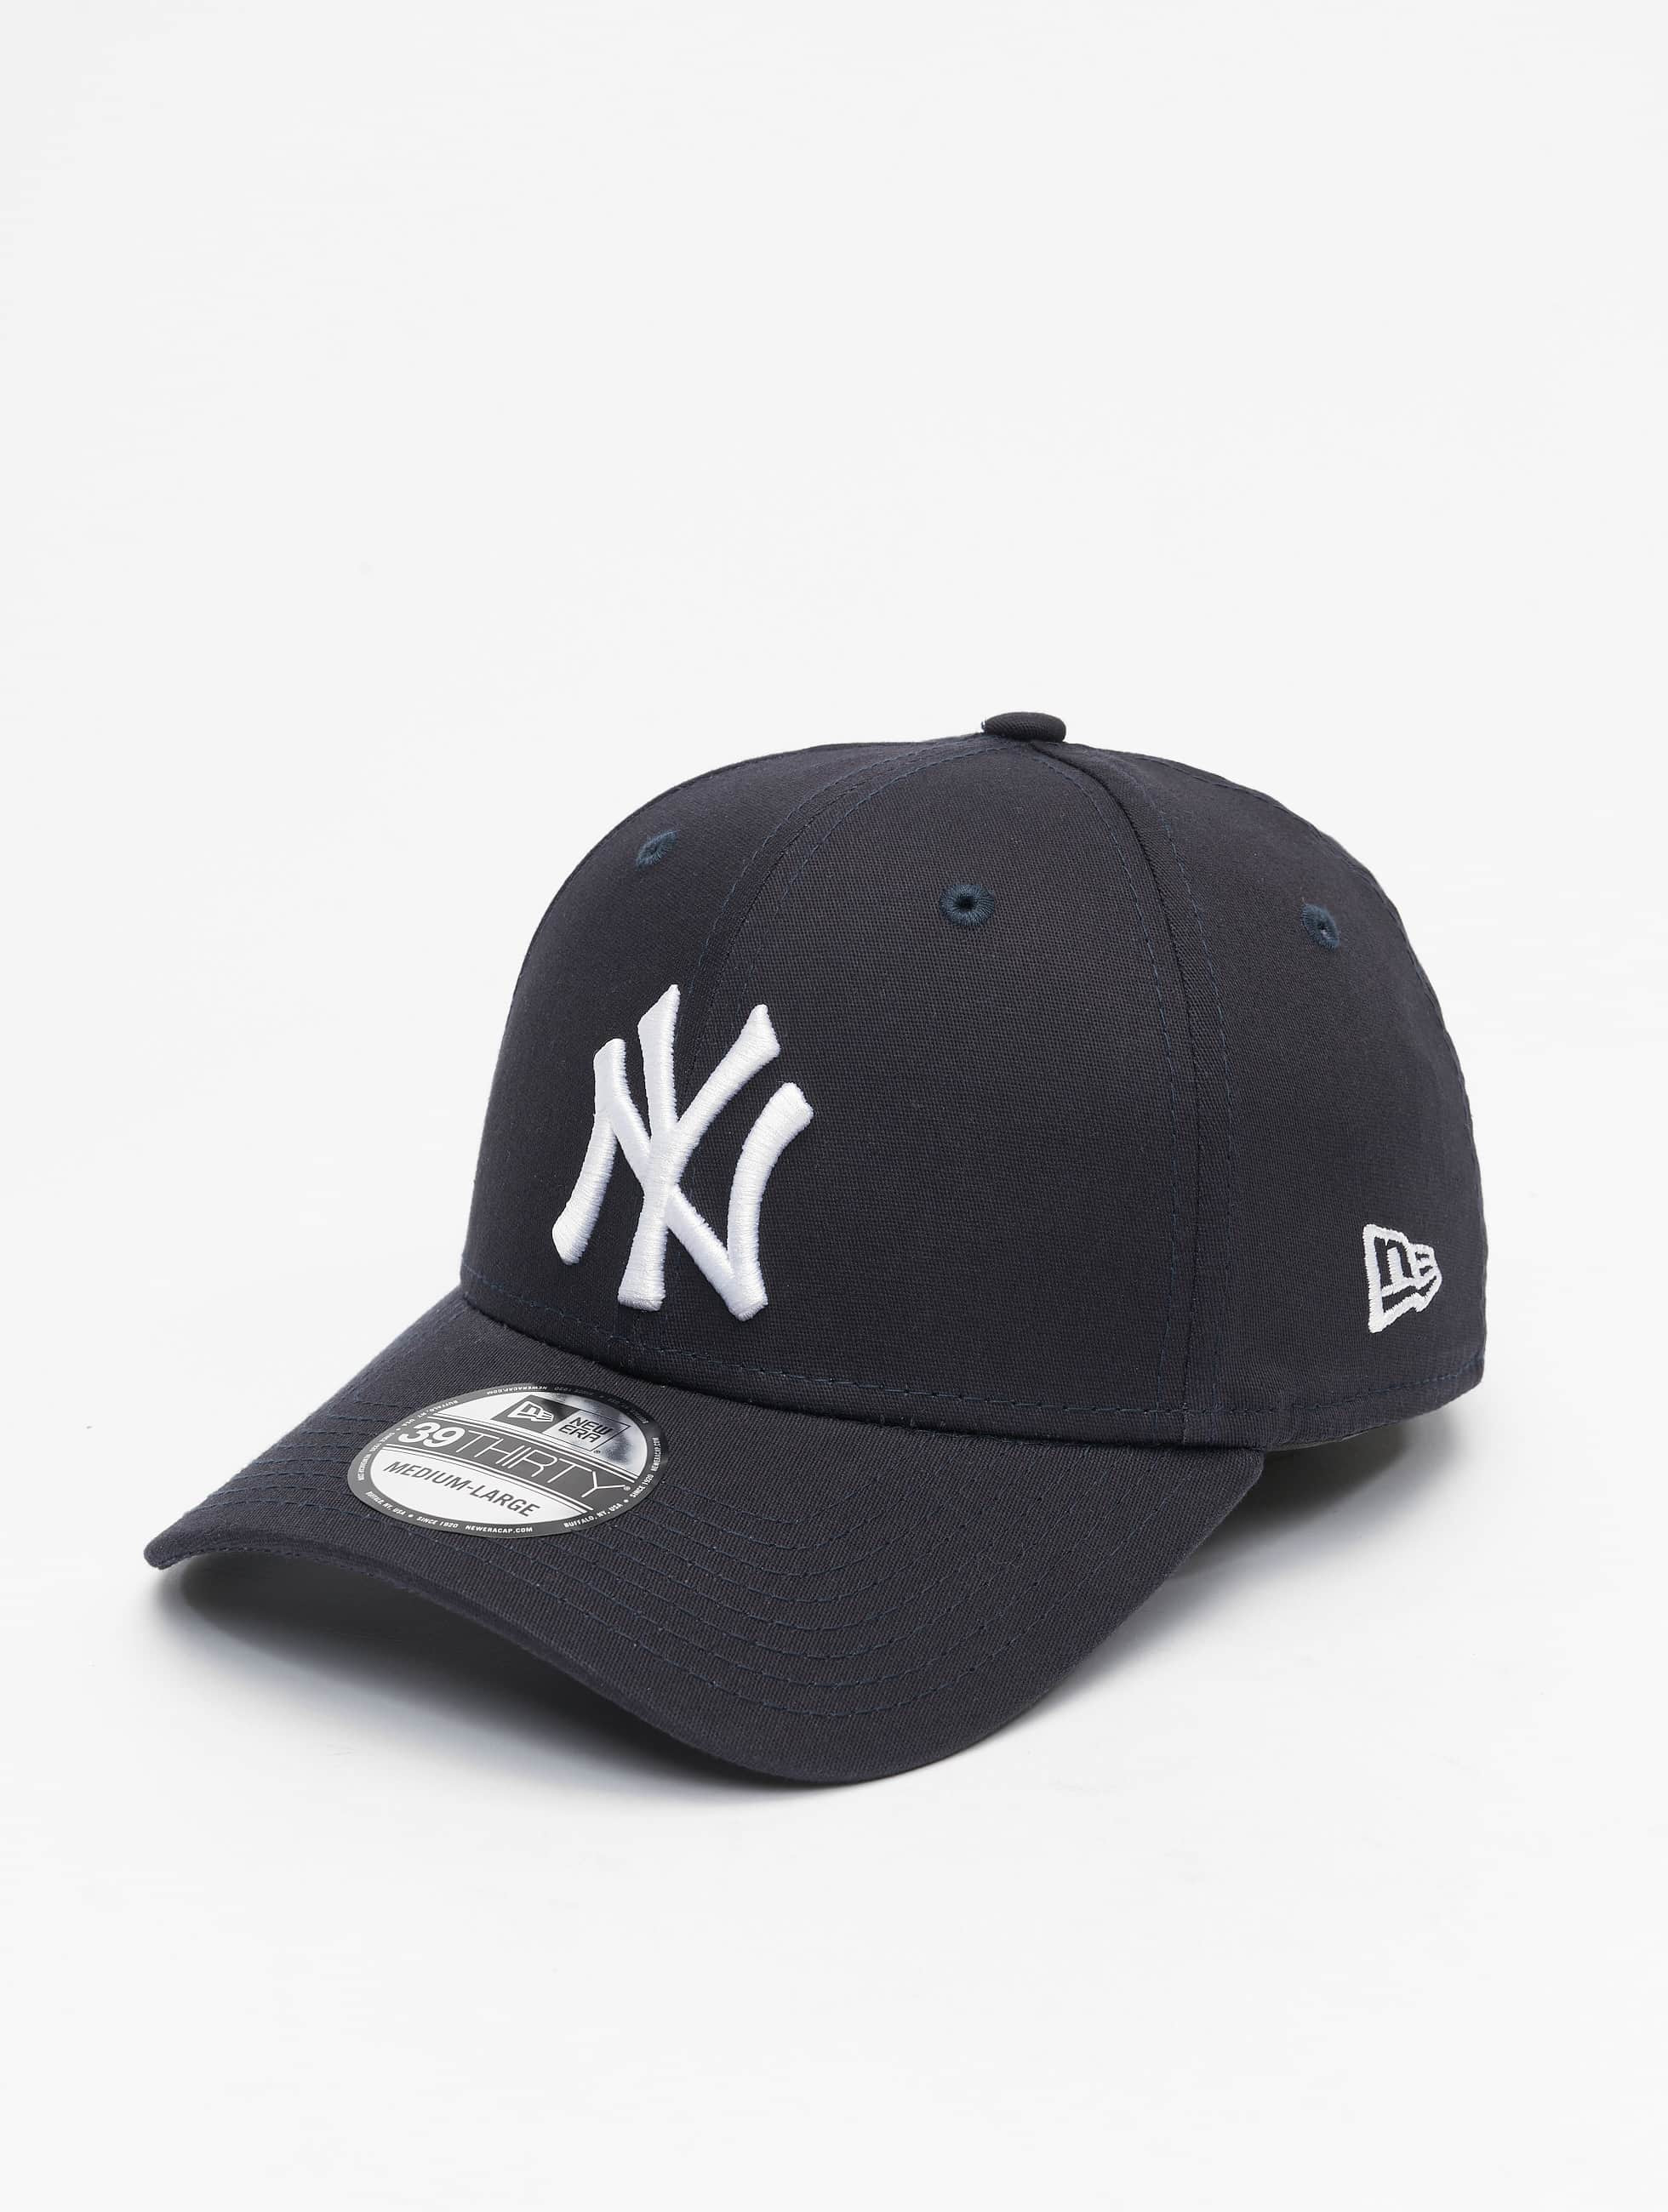 New Era Бейсболкa Flexfit Classic NY Yankees 39Thirty синий